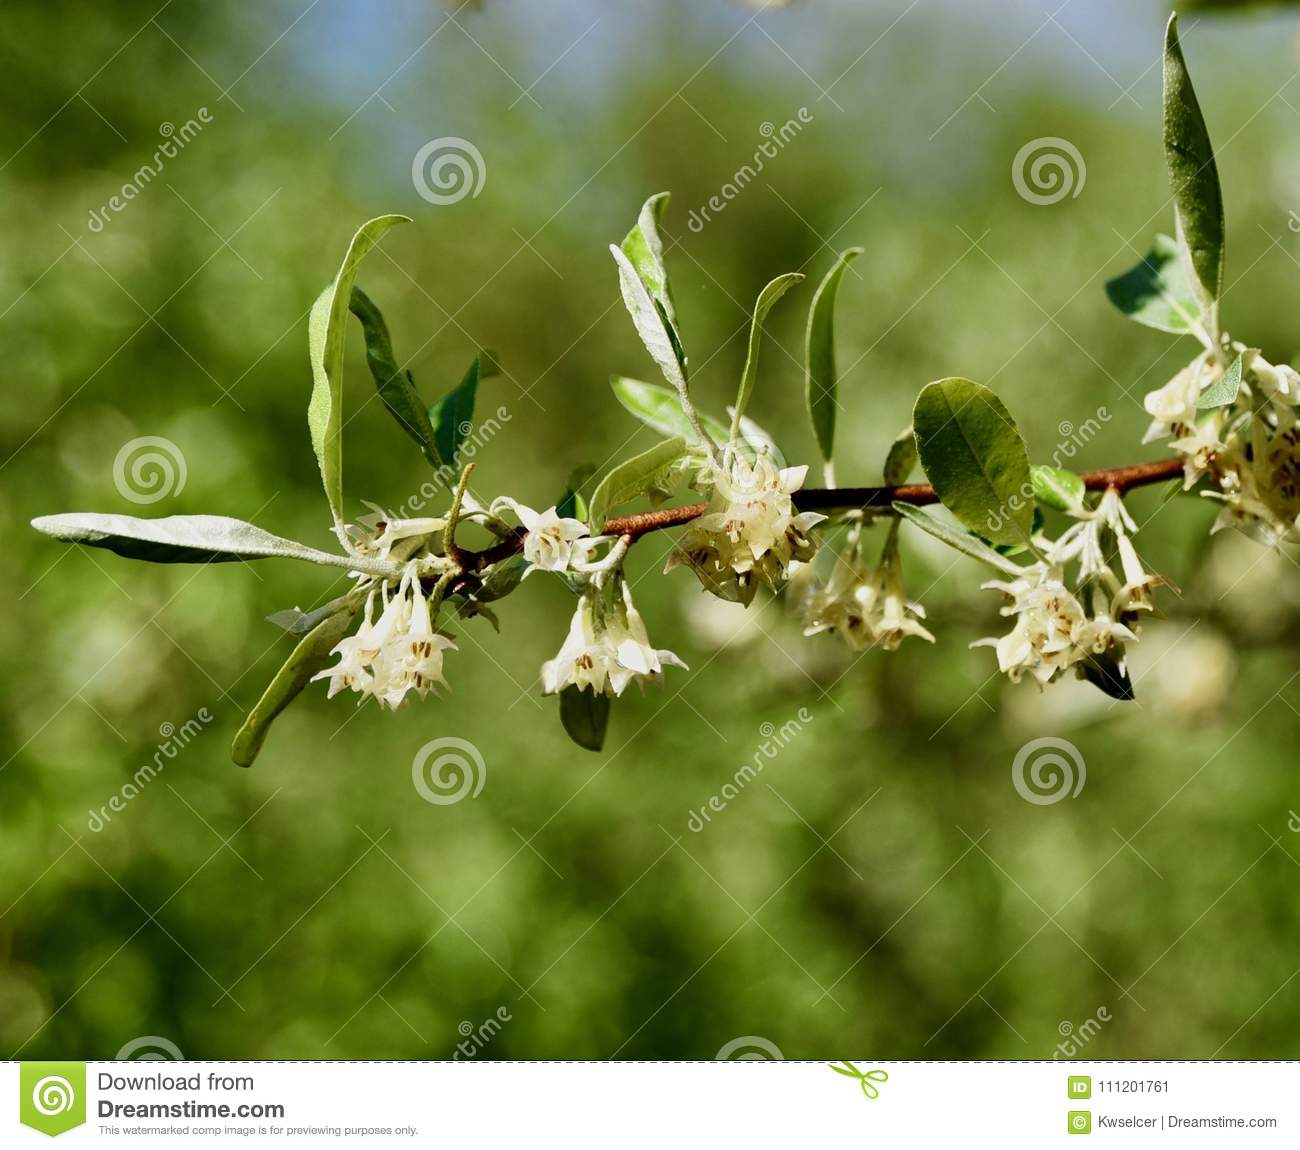 White flower clusters and green leaves of autumn olive bush stock clusters of white flowers surrounded by green leaves on a stem of the autumn olive tree elaeagnus umbellata in a western pennsylvania field mightylinksfo